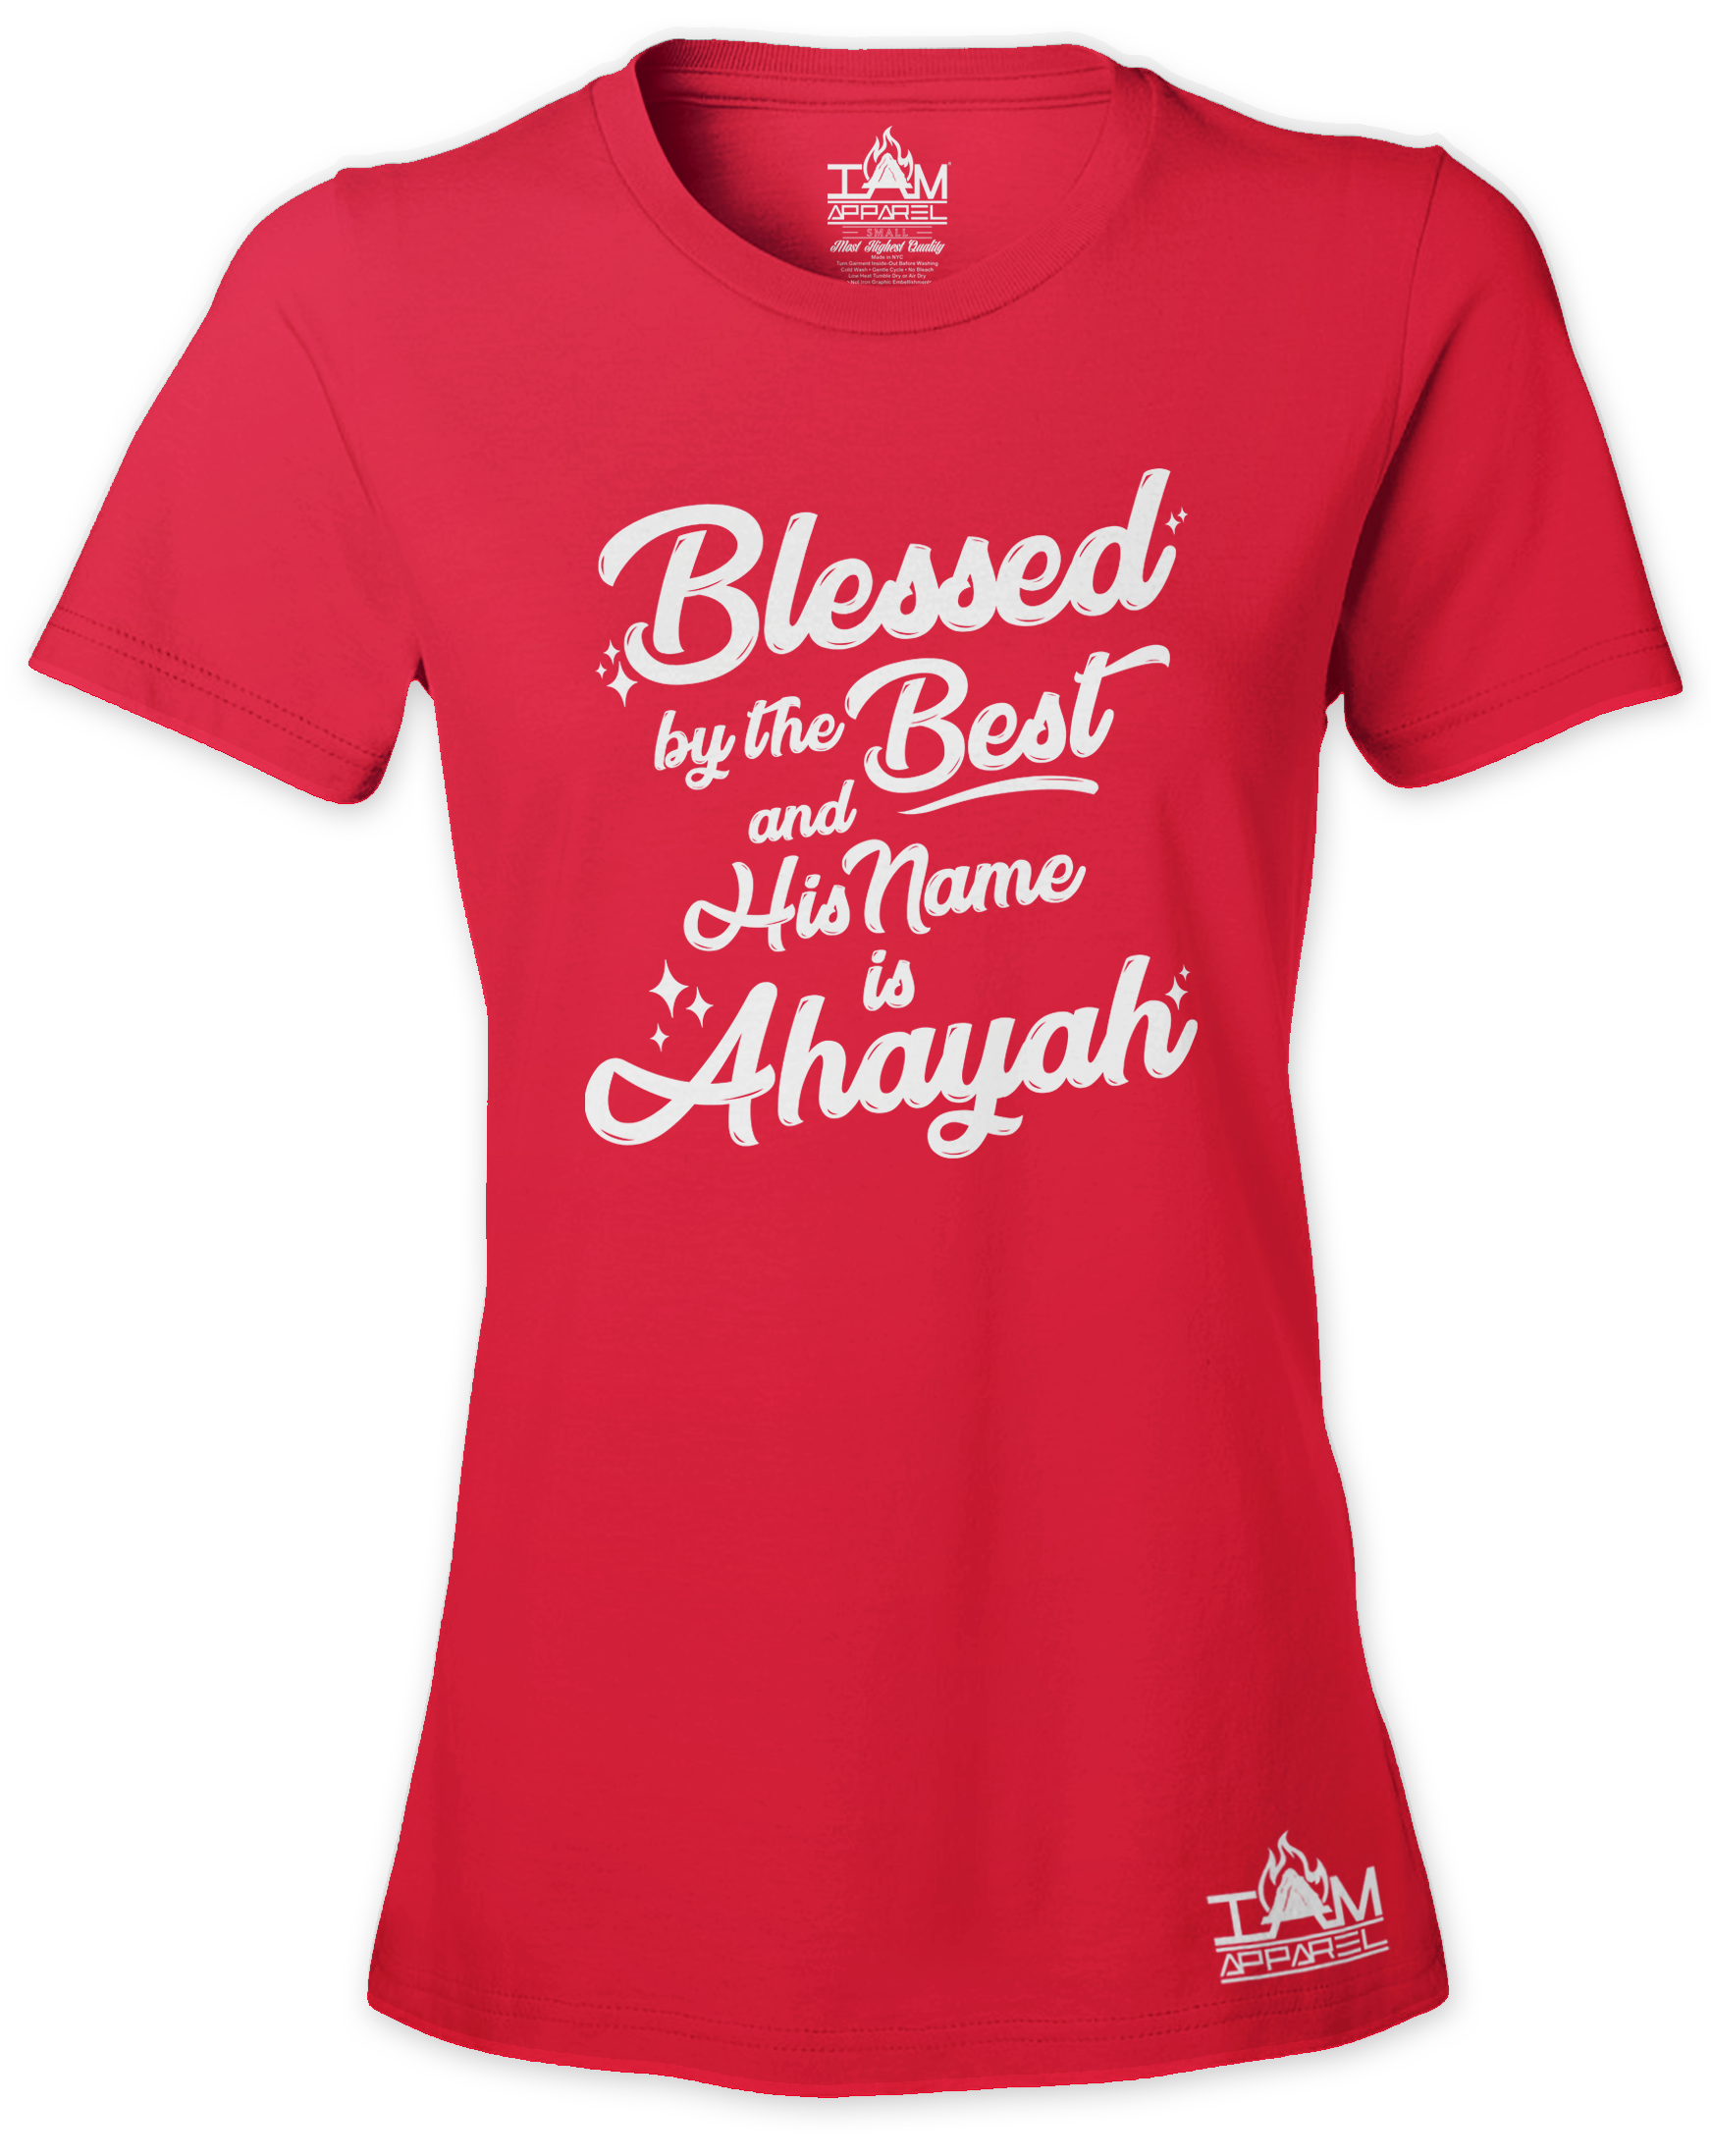 Woman's Blessed by the best  Short Sleeved T-shirt 00078